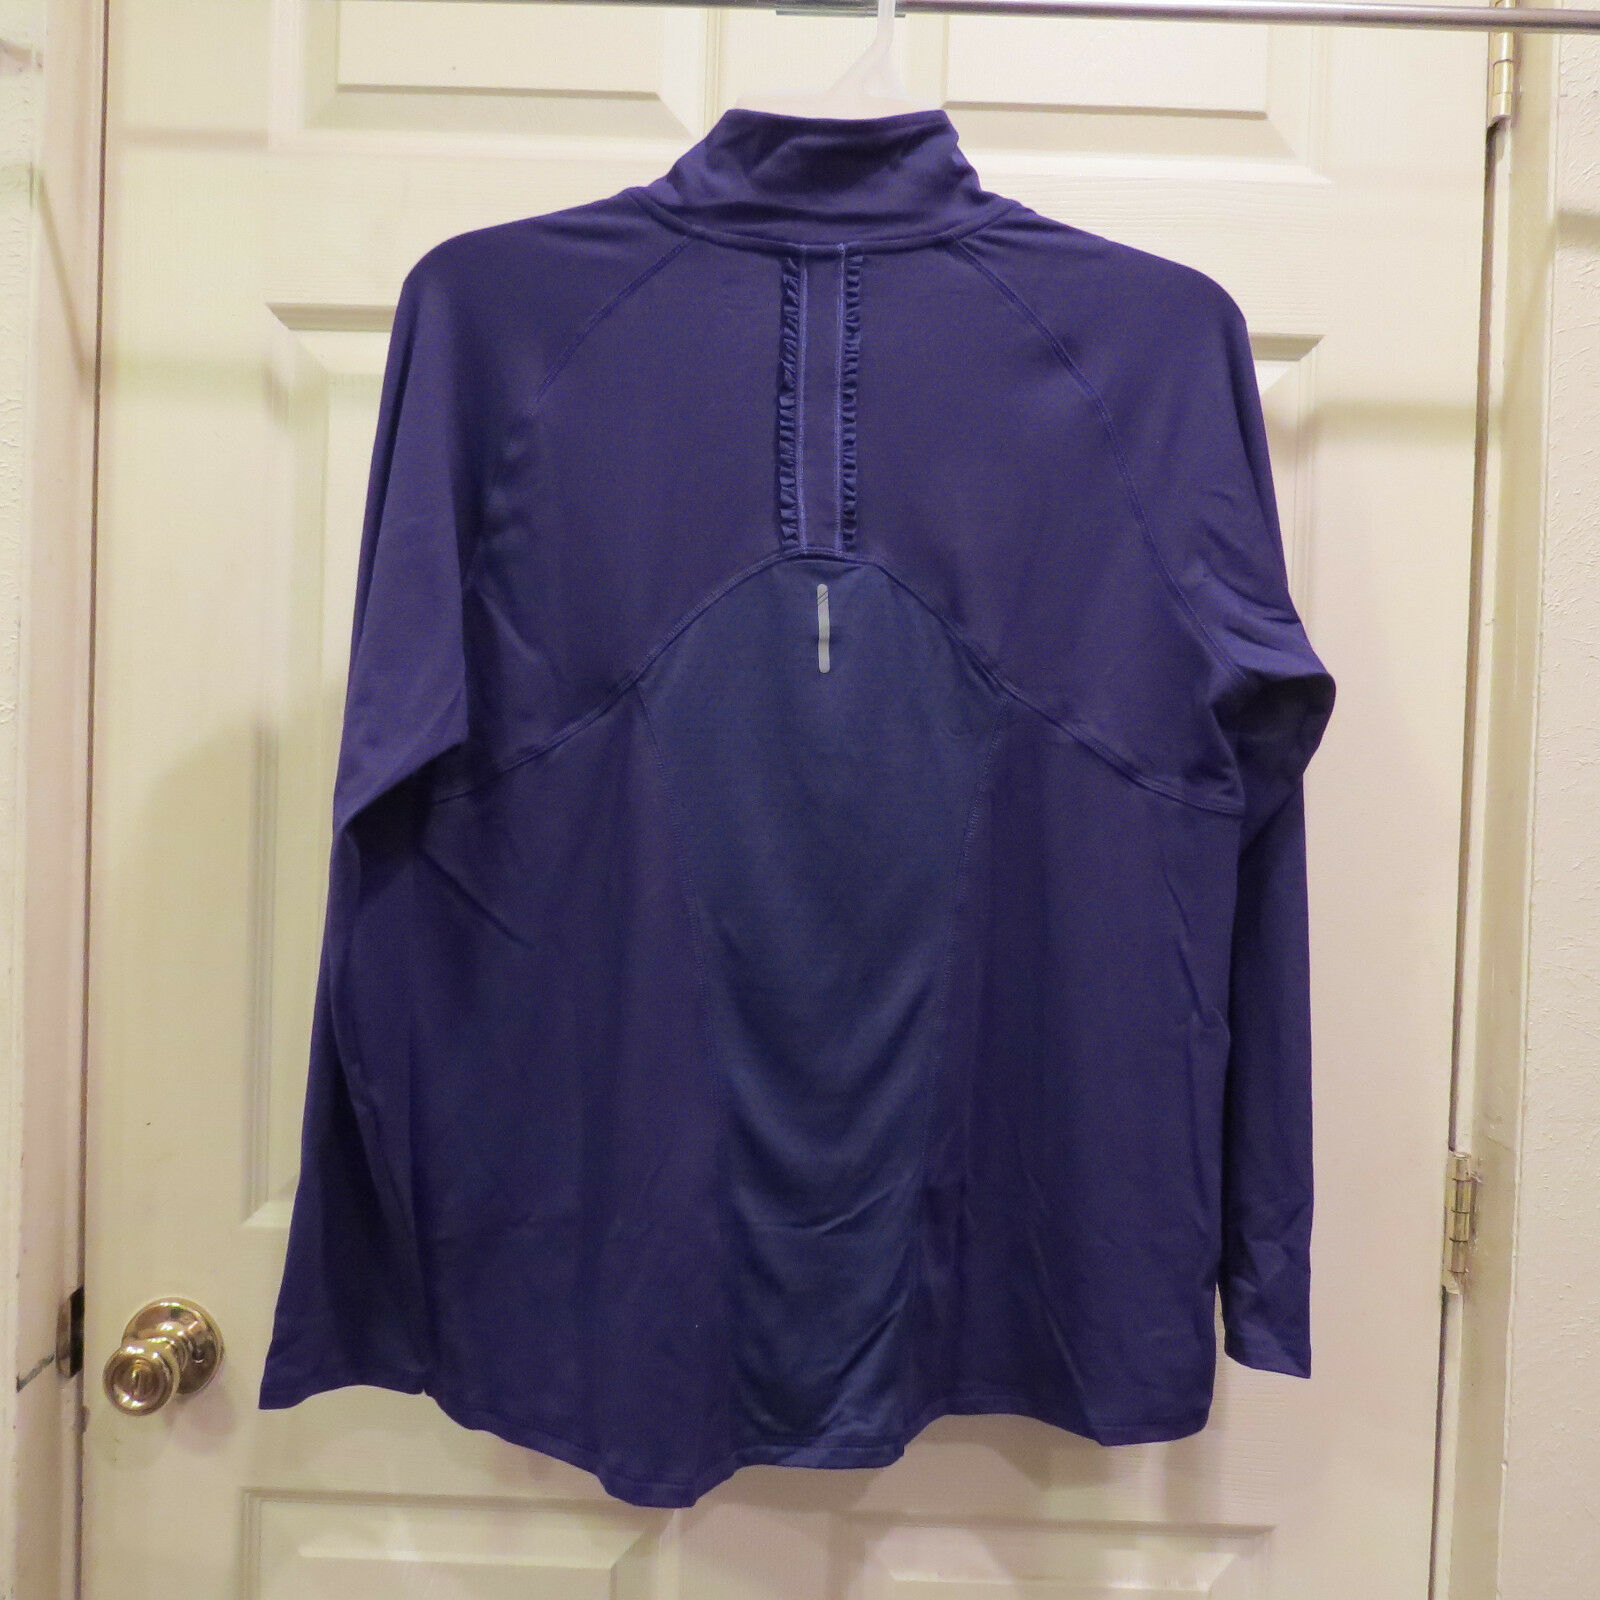 a4156f7f Women's Duo Dry/dry Fit Champion 1/4 Zip Pullover Athletic Top Size XL  NewInBag for sale online | eBay